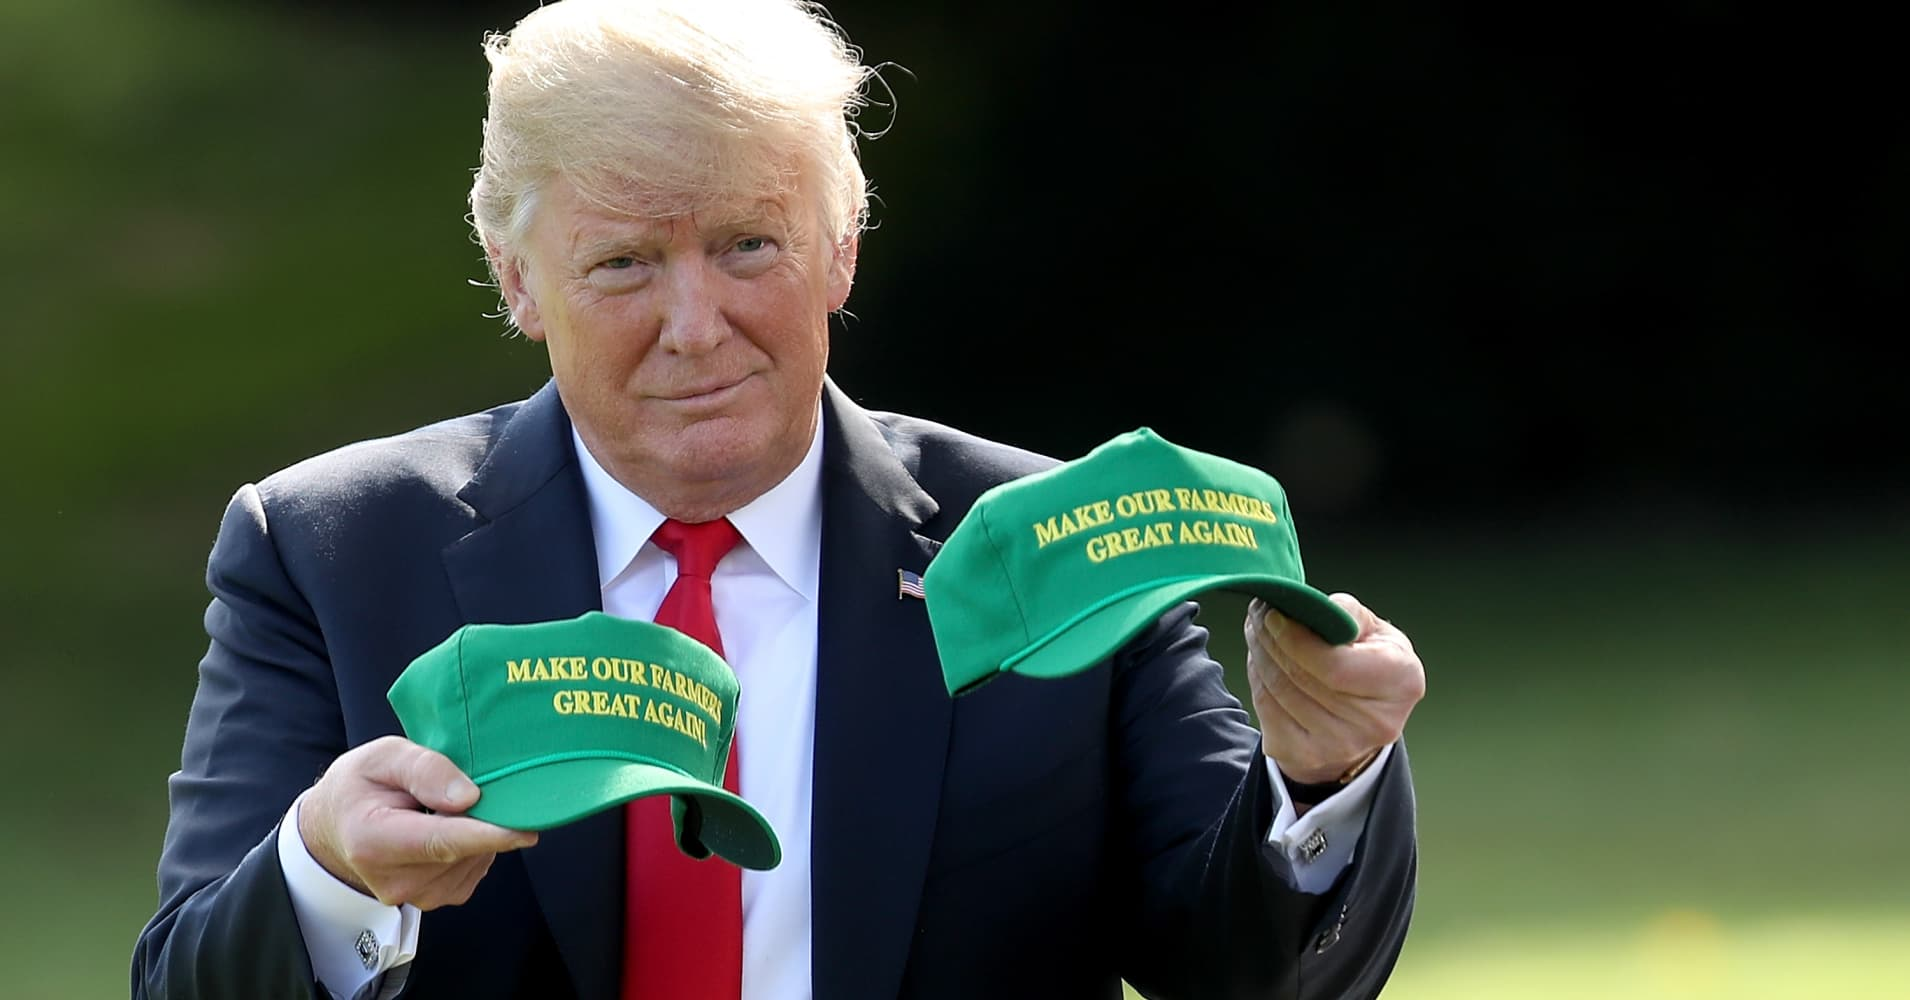 President Donald Trump holds up two hats that say 'Make Our Farmers Great Again' as he departs the White House August 30, 2018 in Washington, DC.